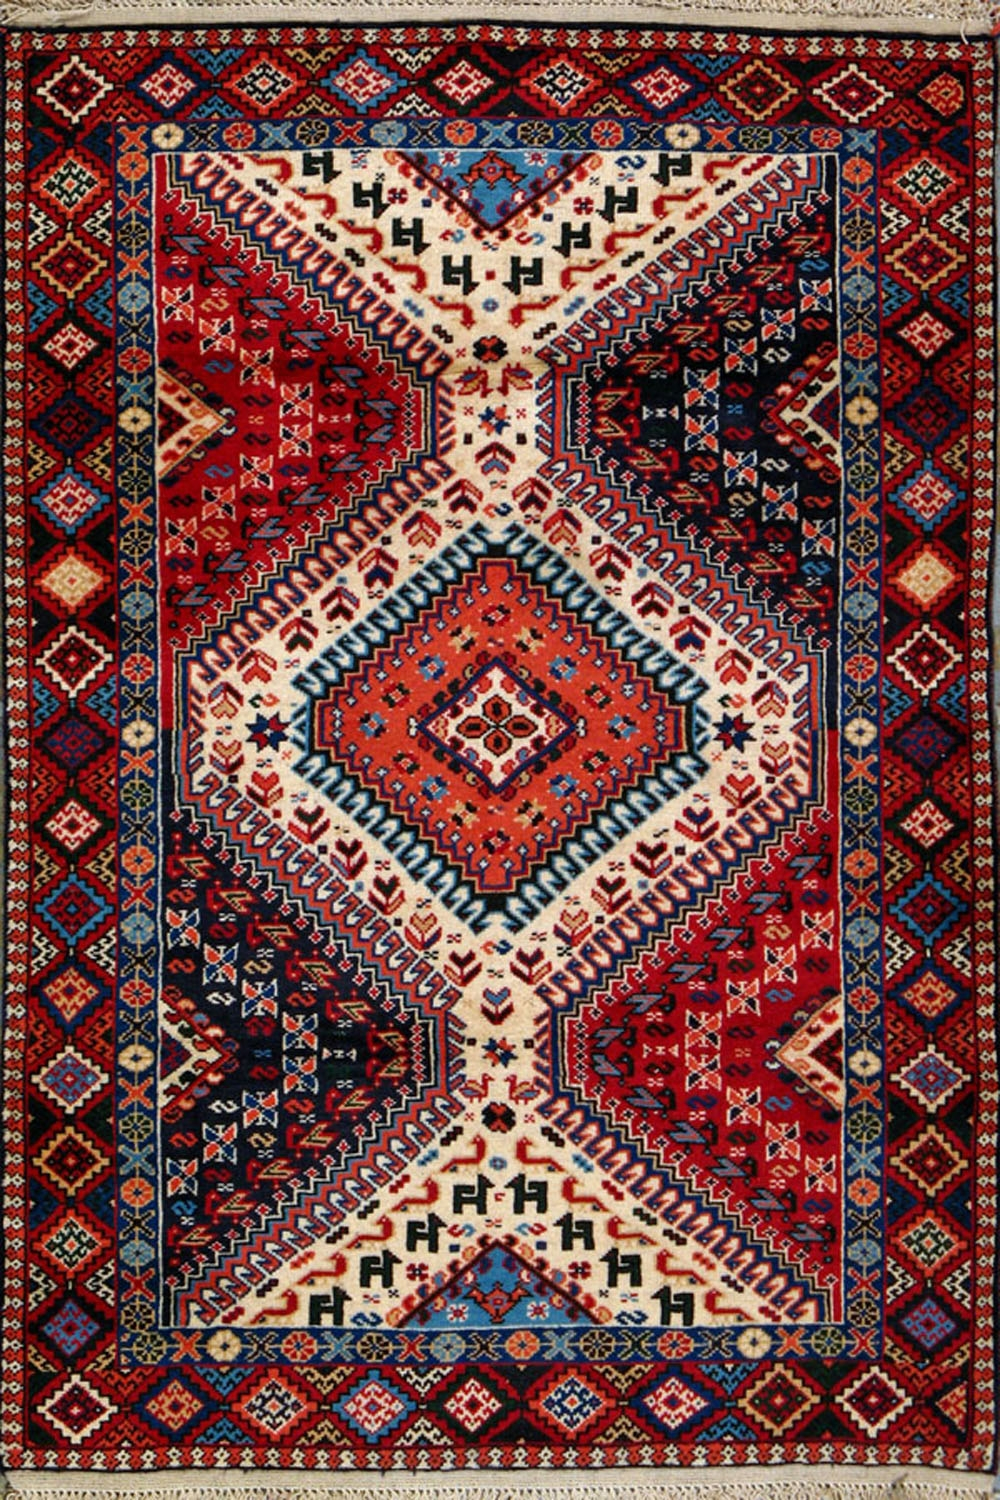 Buy Yalameh Persian Rug 3 4 X 4 11 Authentic Yalameh Handmade Rug In Persian Rugs (Image 6 of 15)